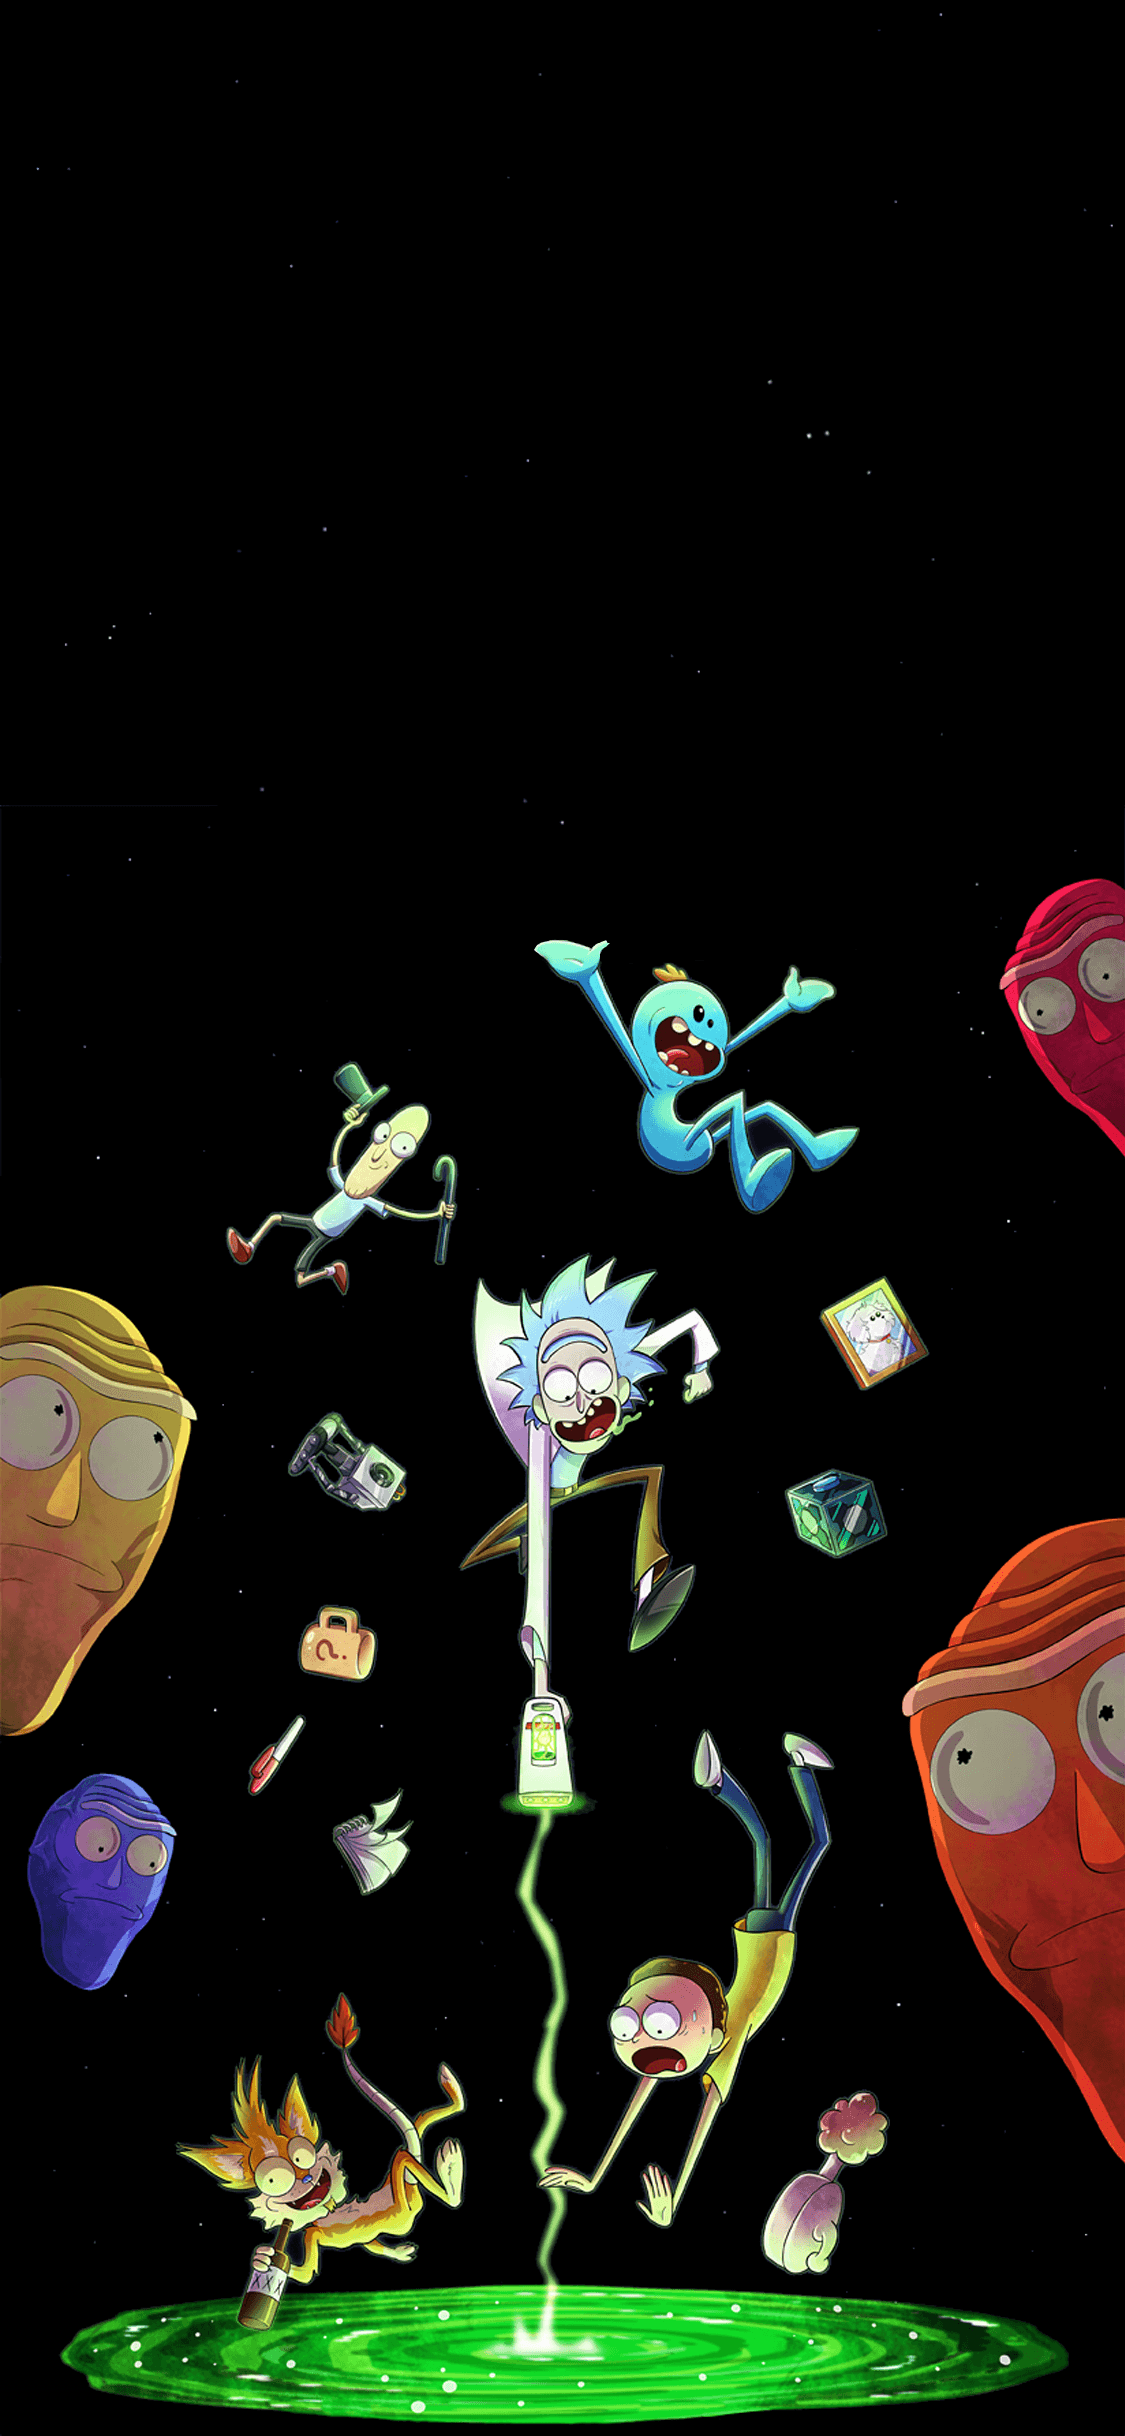 Amoled Rick And Morty Wallpapers - Wallpaper Cave